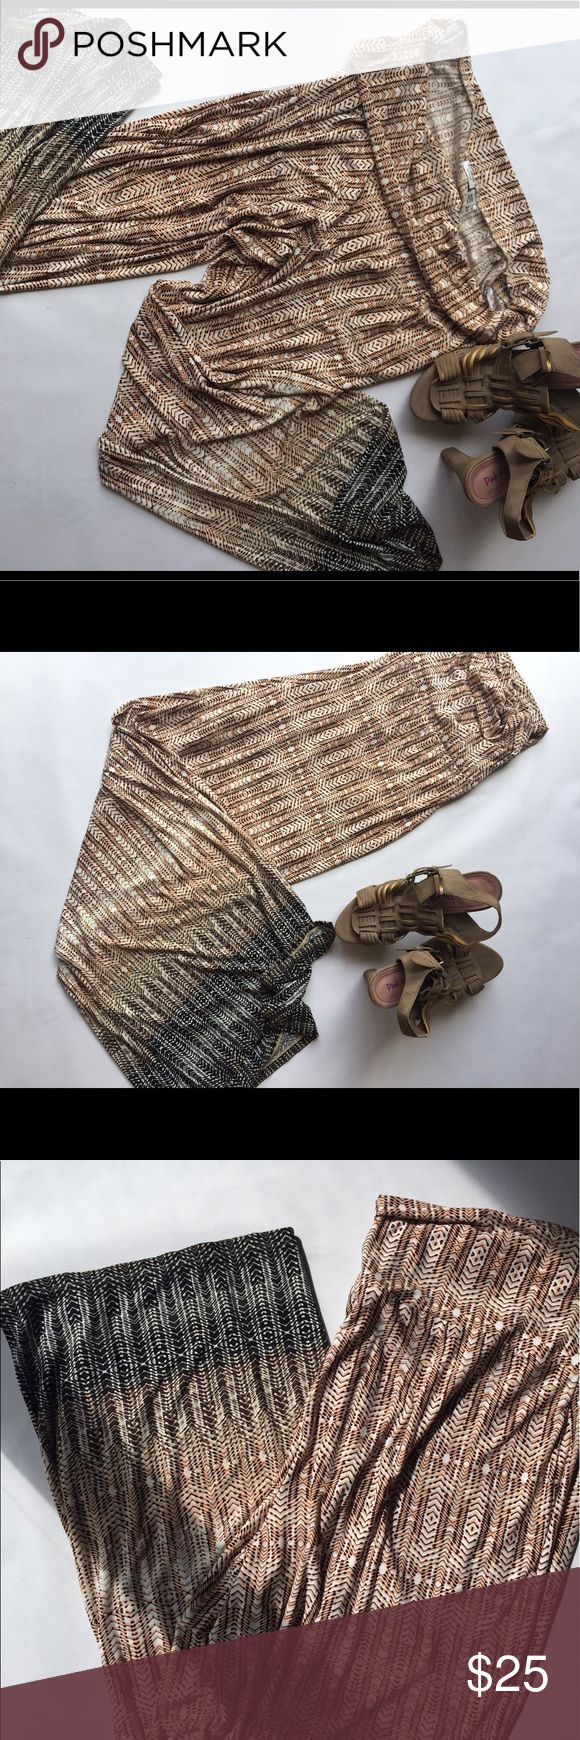 CATO Tribal Print pants EUC. No visible wear. Fun tribal pattern with ombré fade from black to light tan. Fold over waist for added comfort Cato Pants Wide Leg